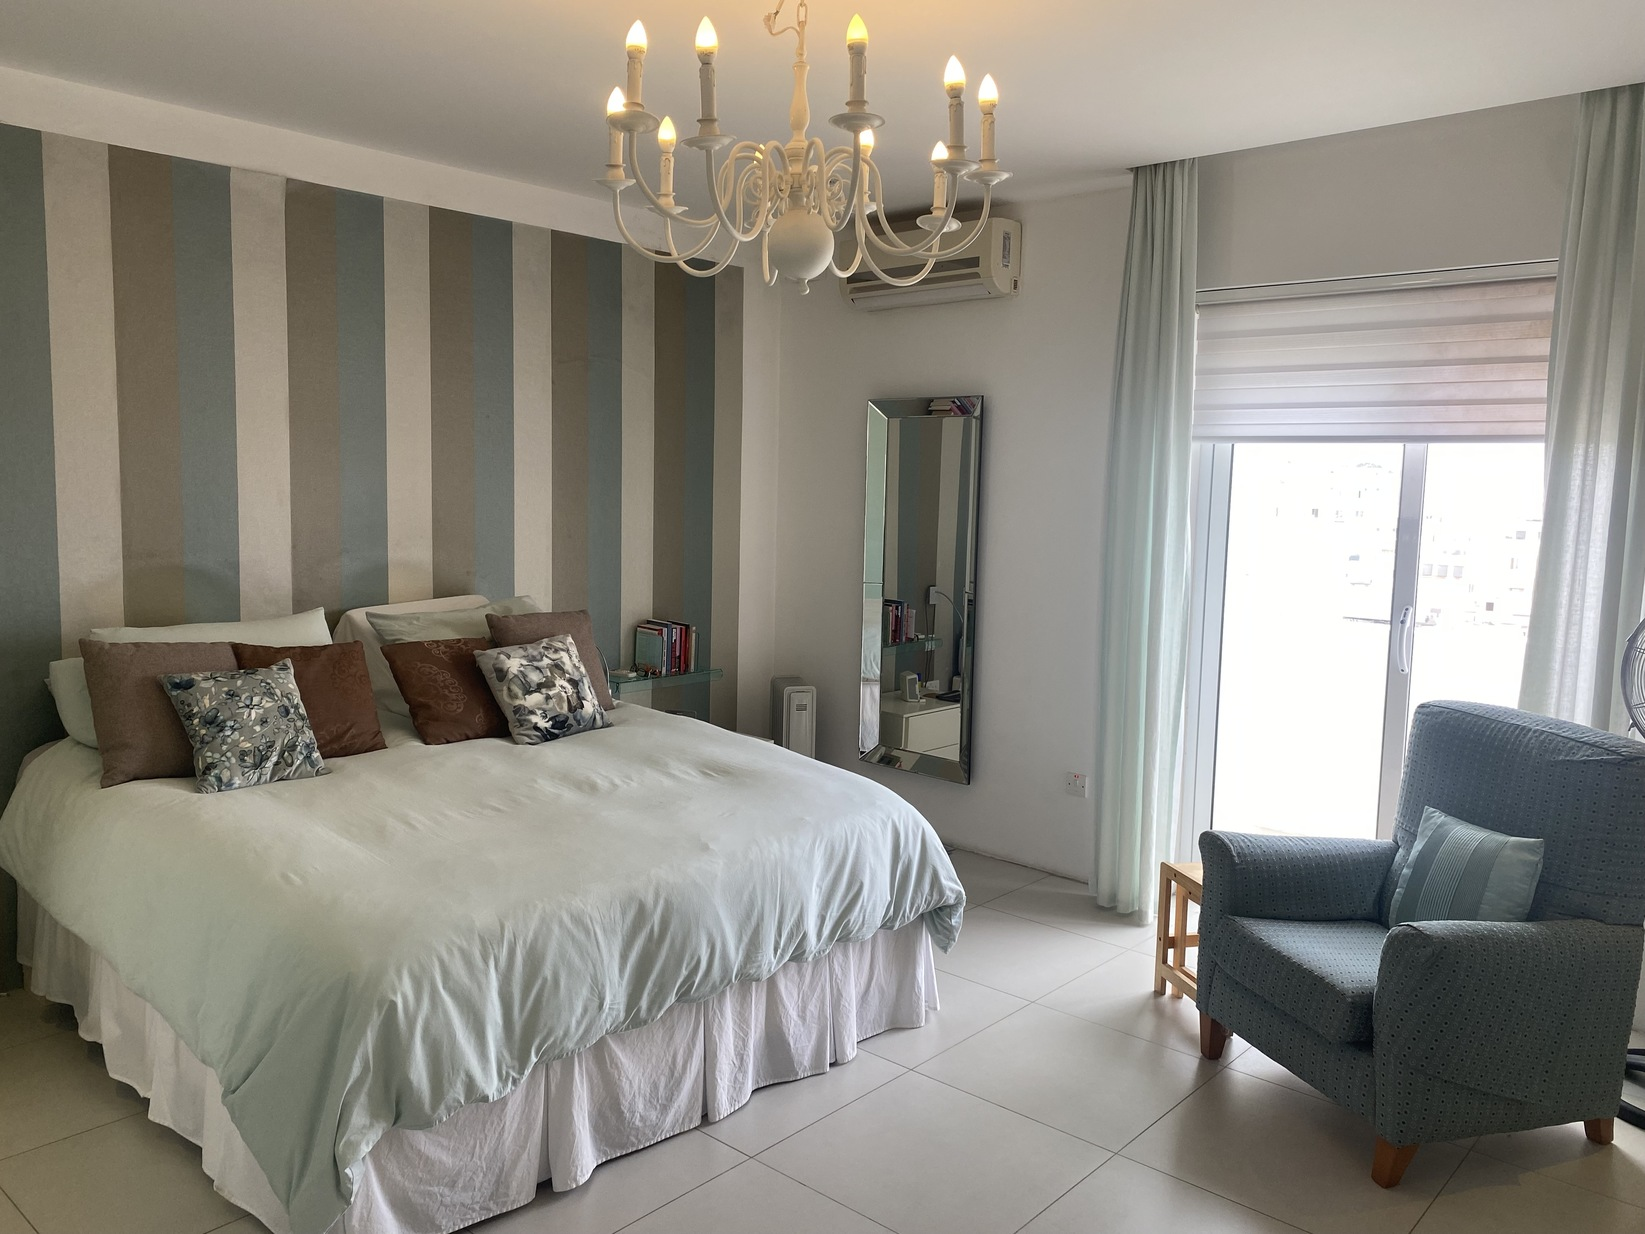 3 bed Penthouse For Sale in Swieqi, Swieqi - thumb 11